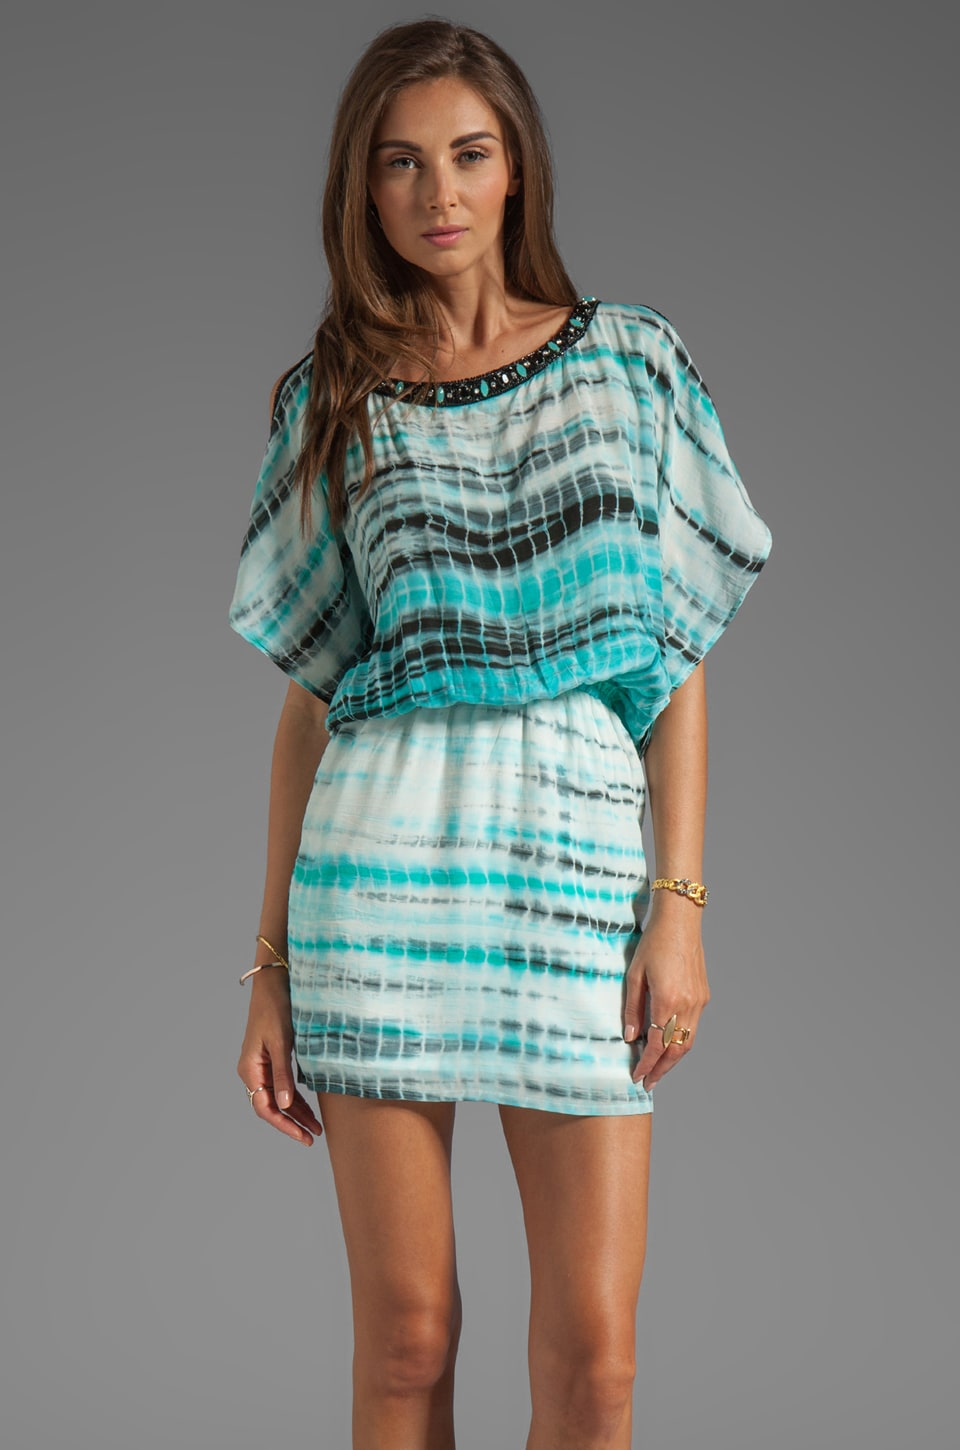 Karina Grimaldi Mayte Beaded Mini in Teal Tie Dye